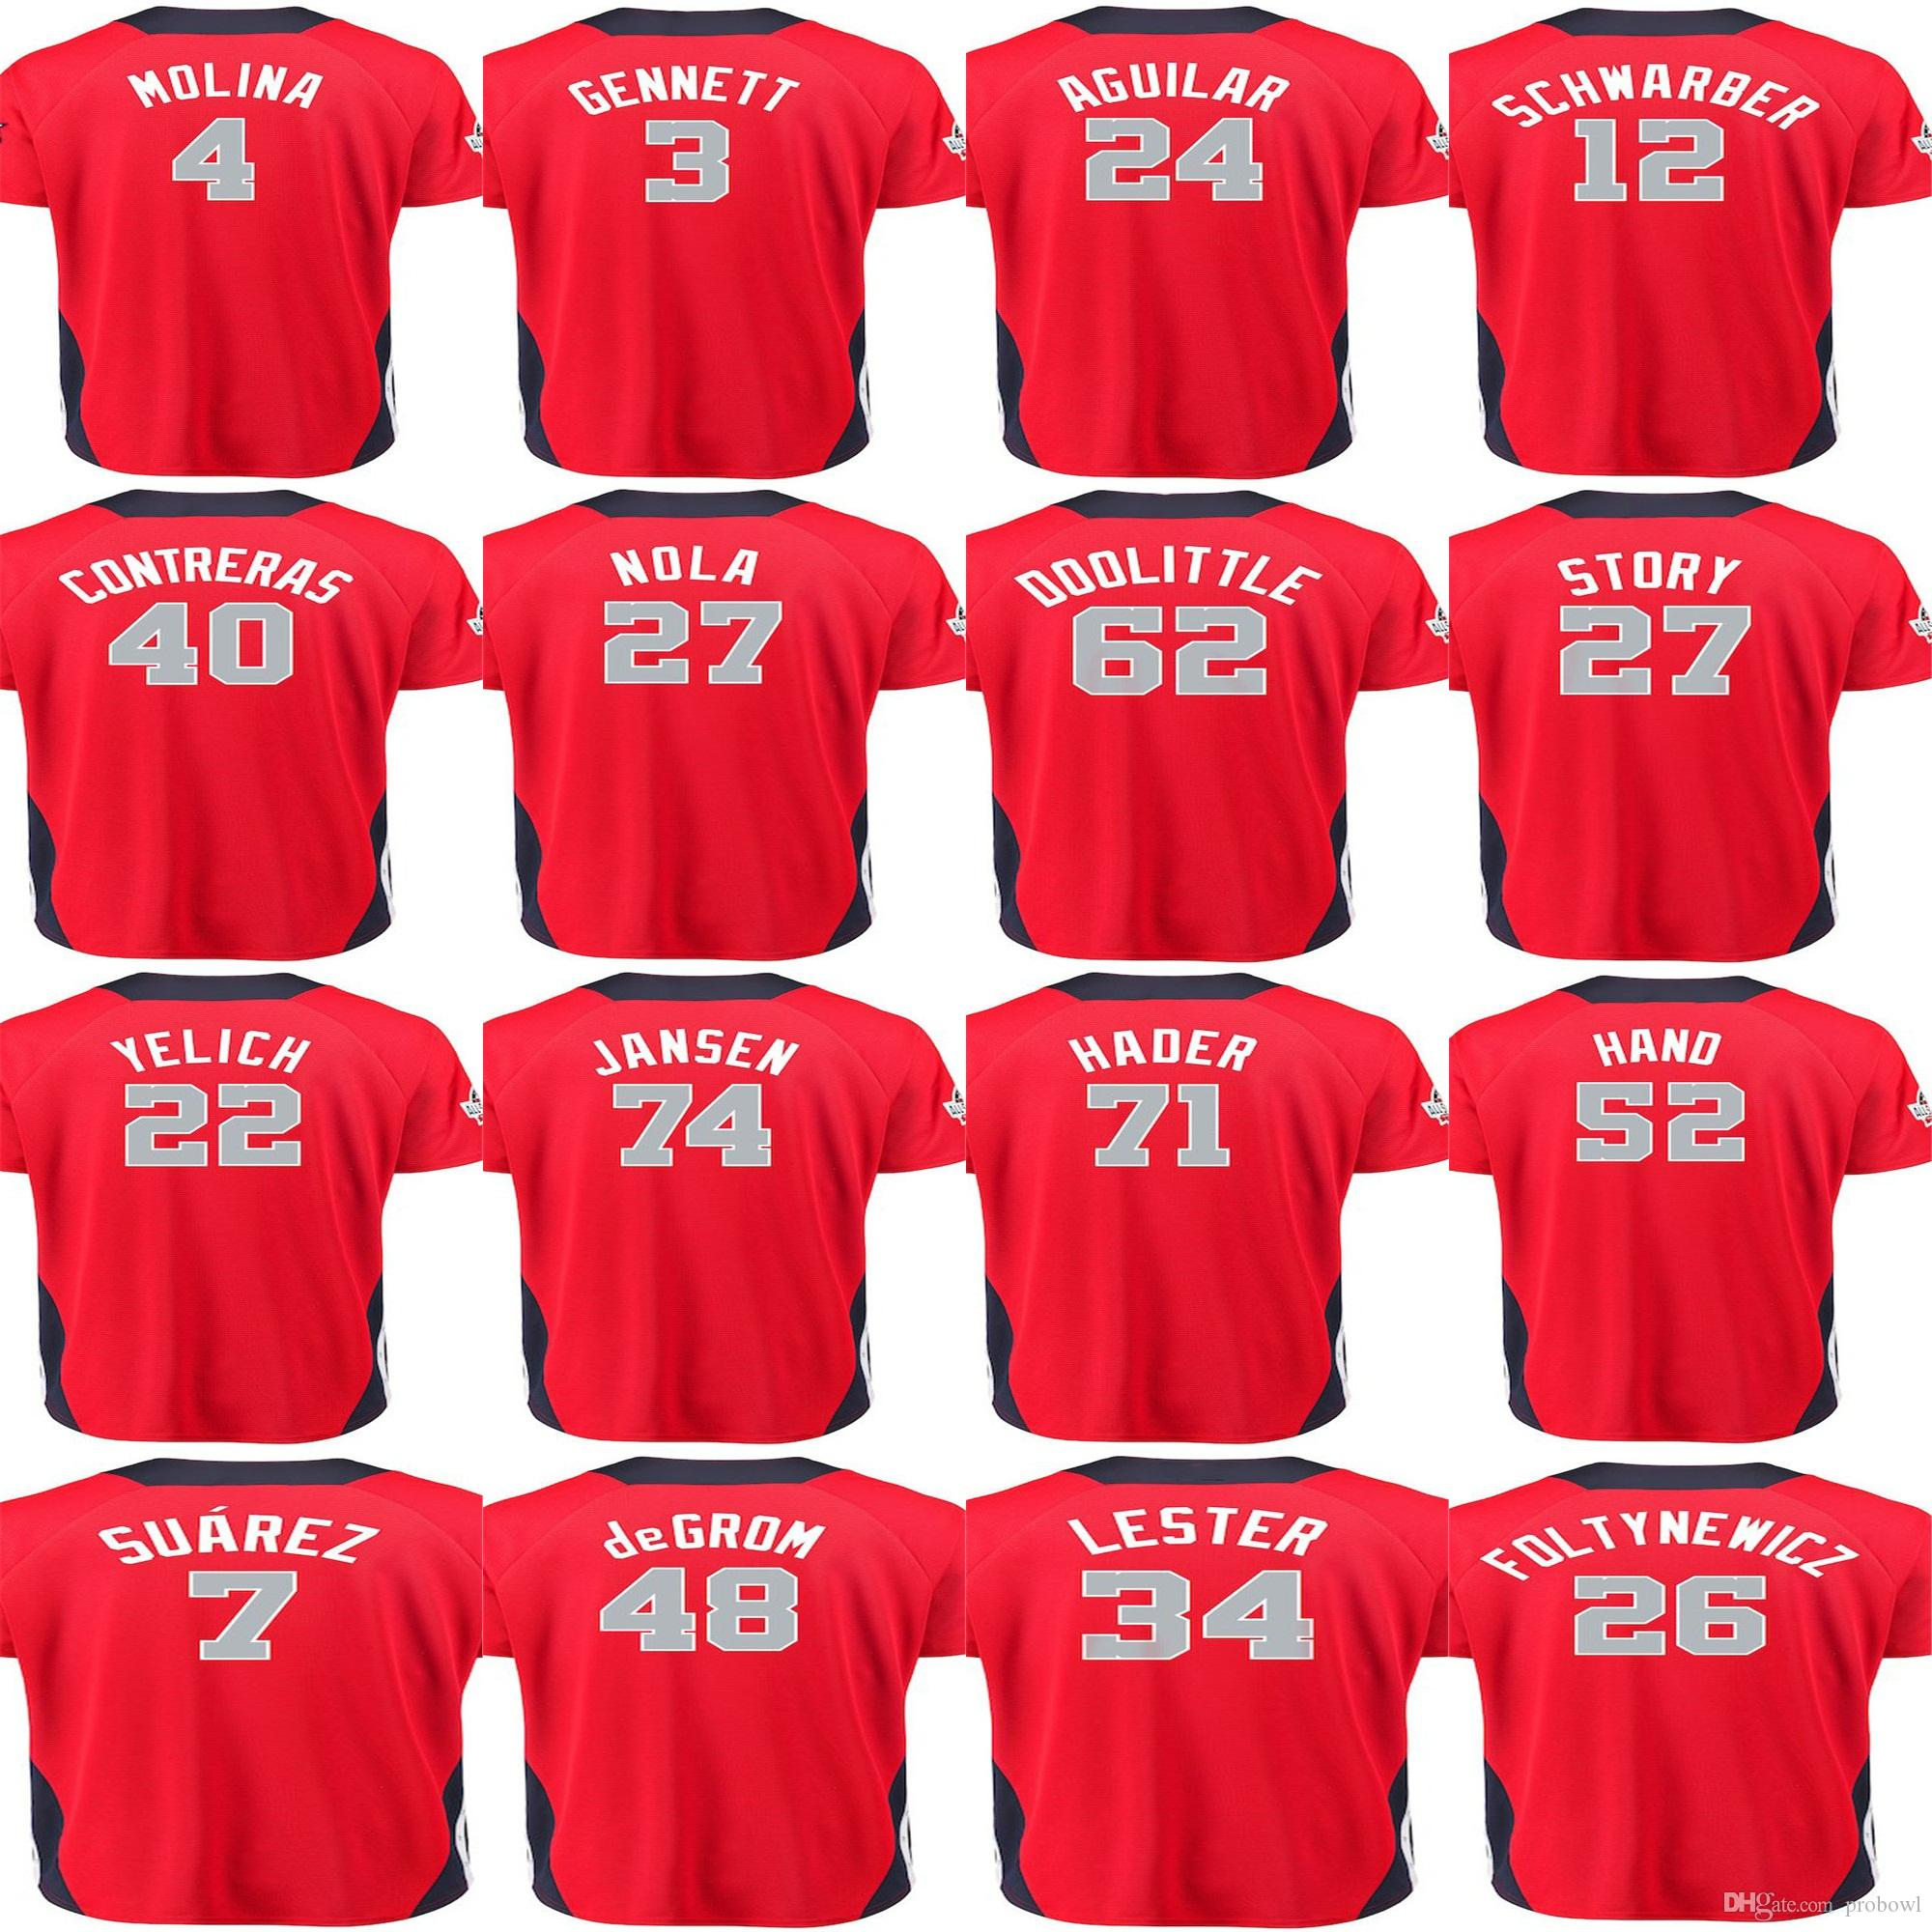 finest selection 4d313 97add canada yadier molina all star jersey ced33 81c89